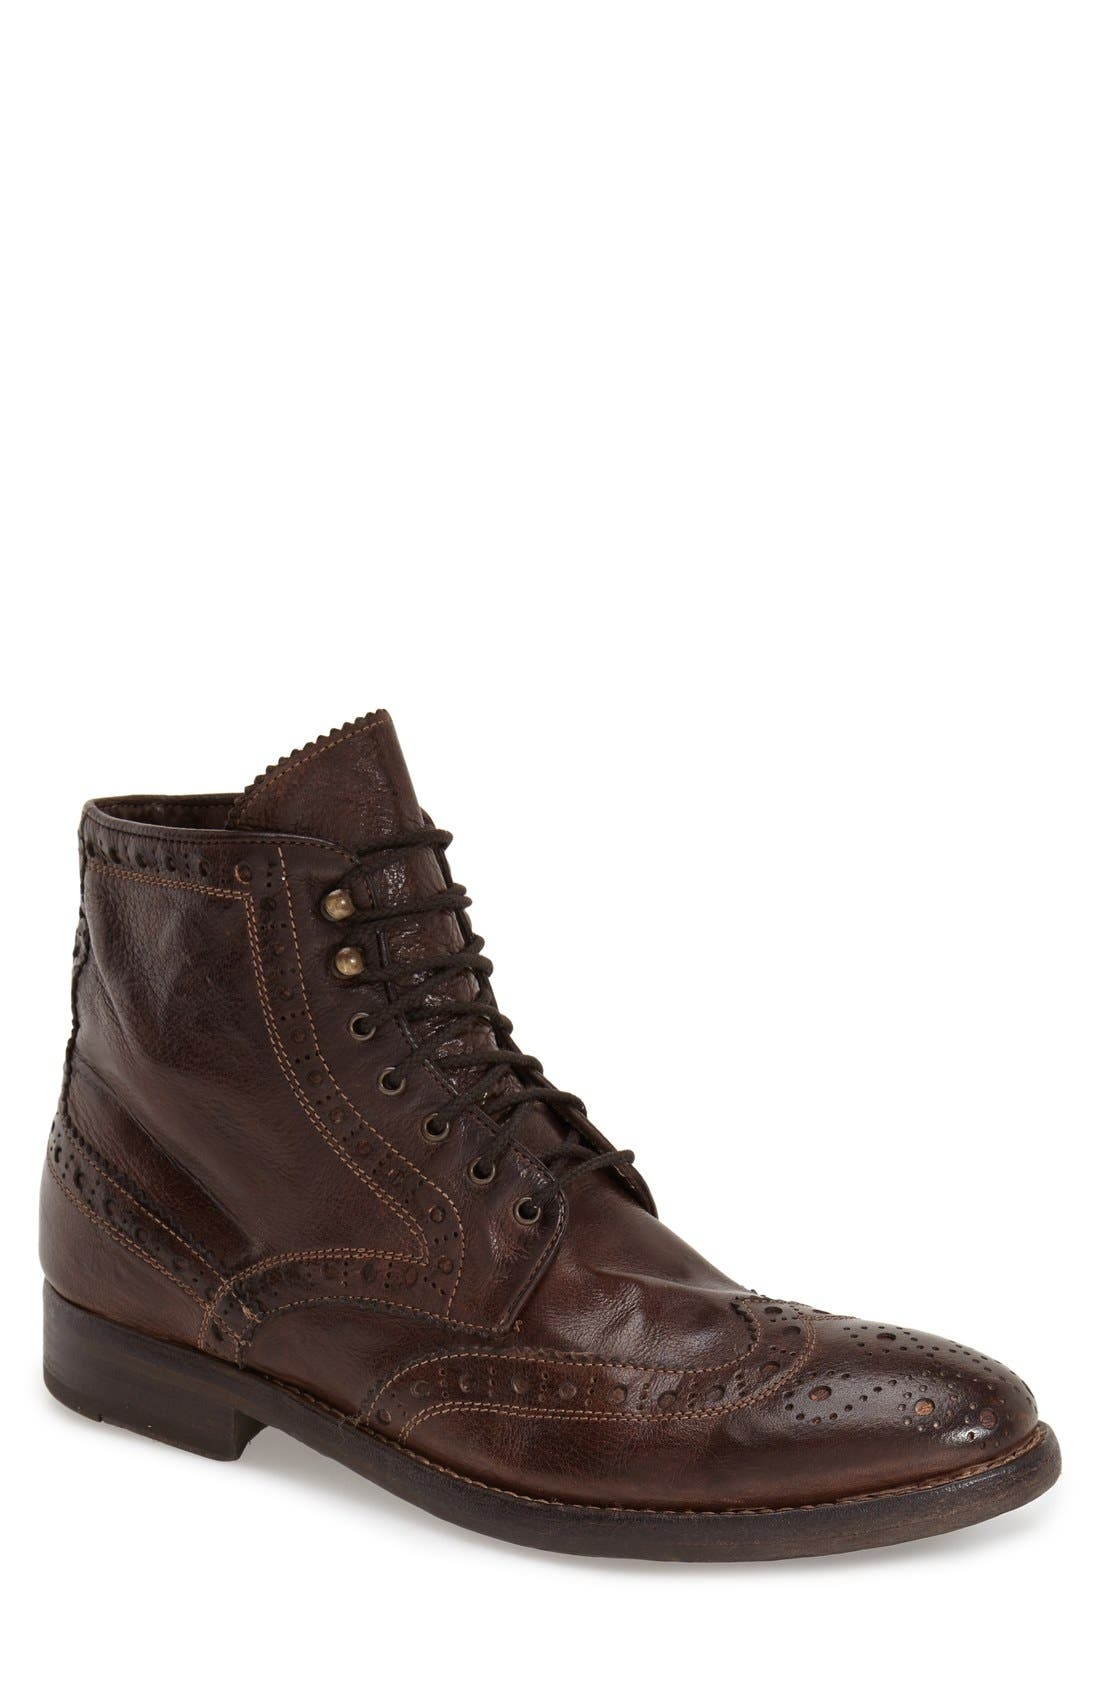 'Brennan' Boot,                         Main,                         color, Chocolate Leather